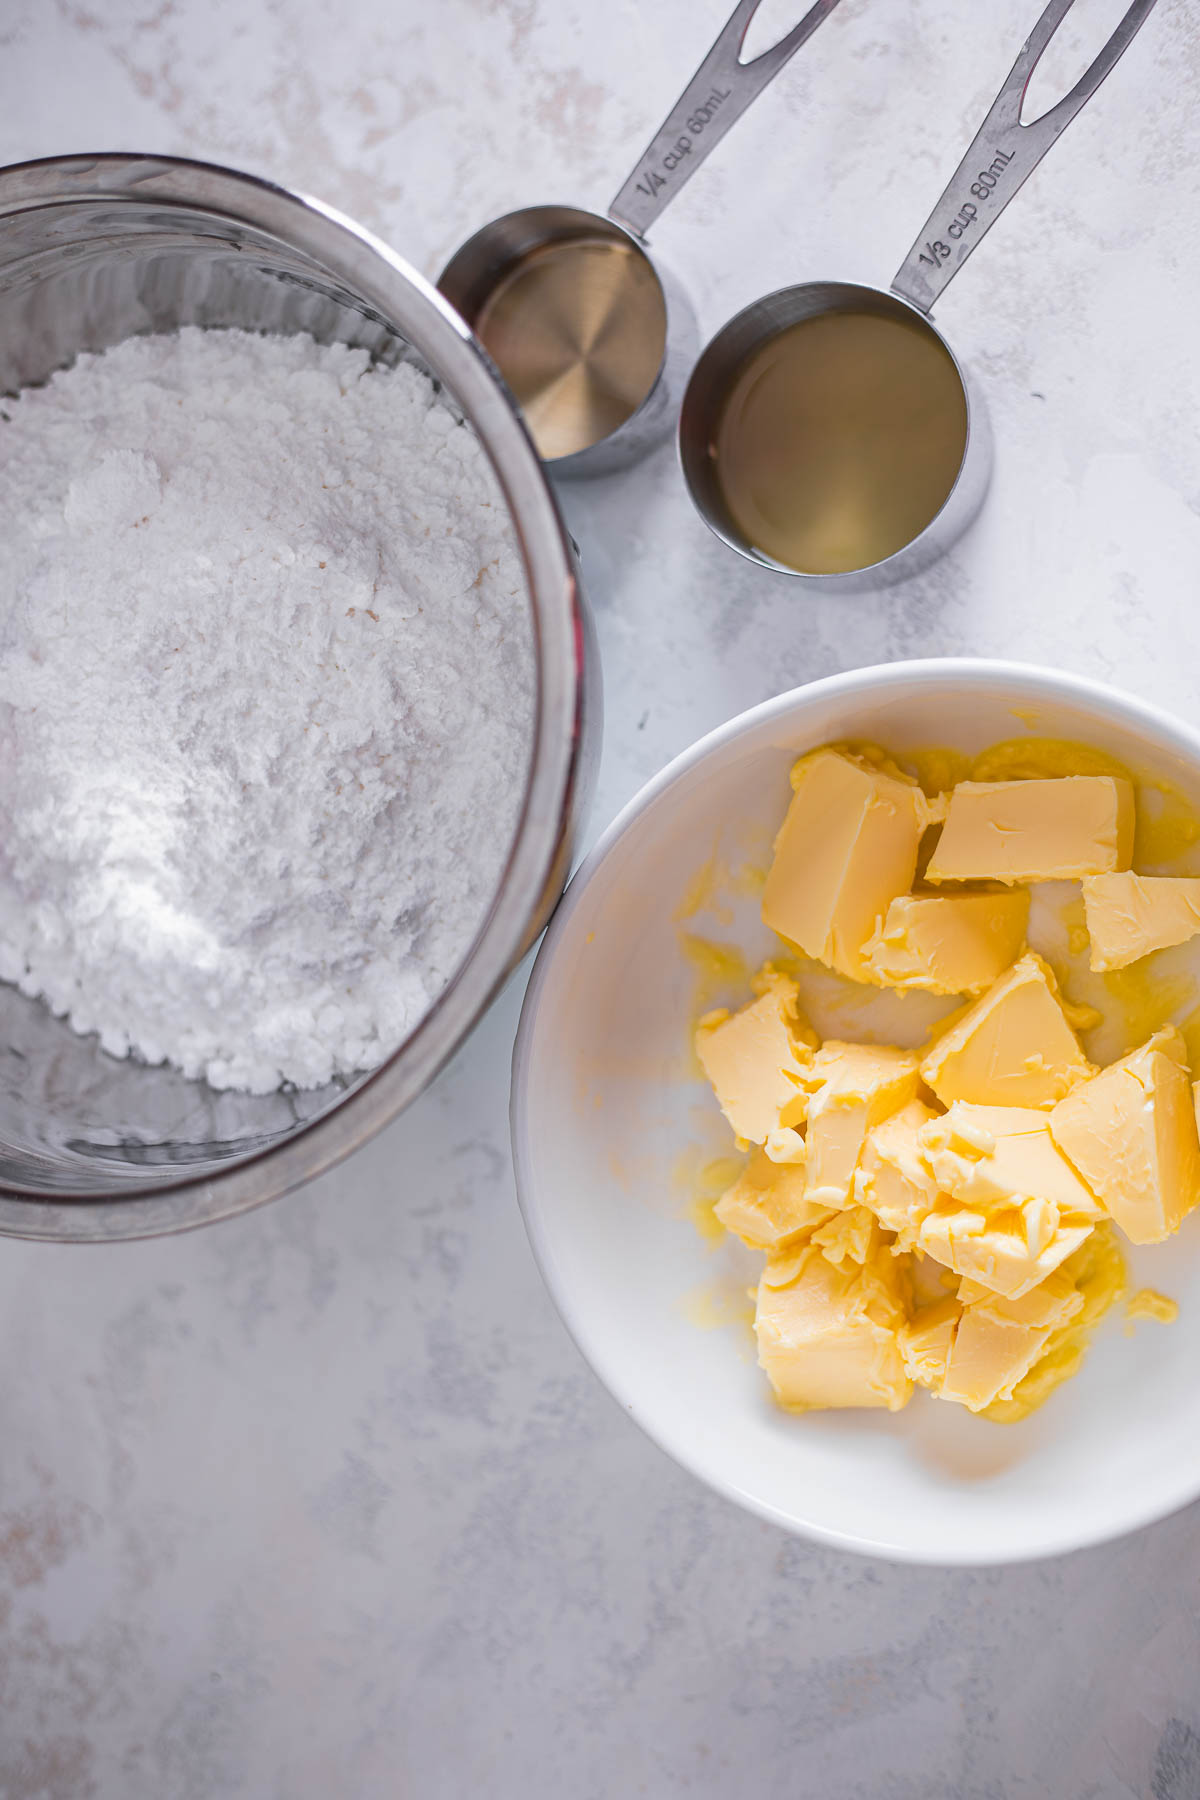 Ingredients for vegan frosting